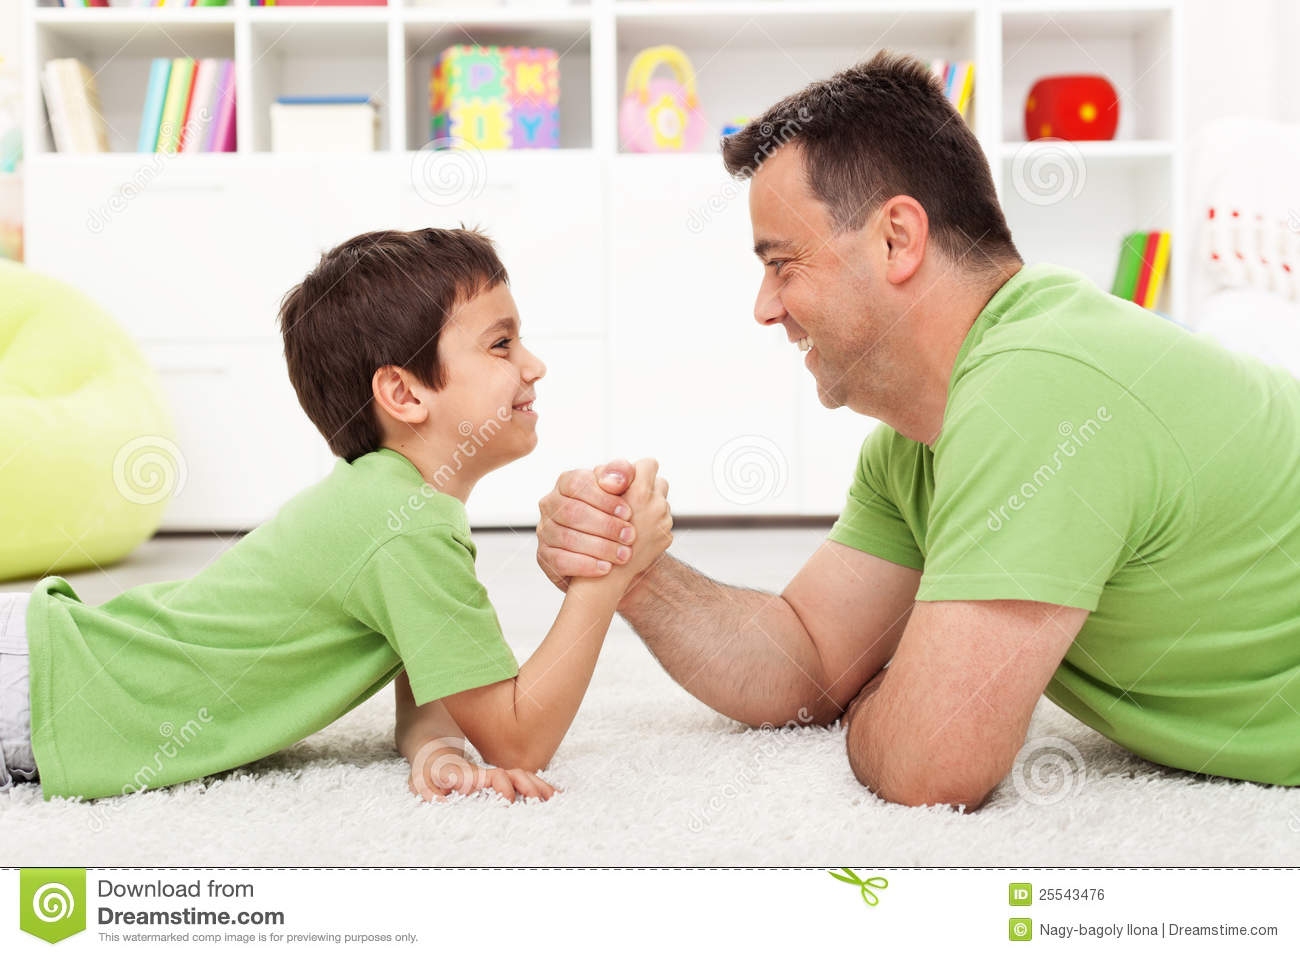 father and son arm wrestling royalty free stock image image 25543476. Black Bedroom Furniture Sets. Home Design Ideas